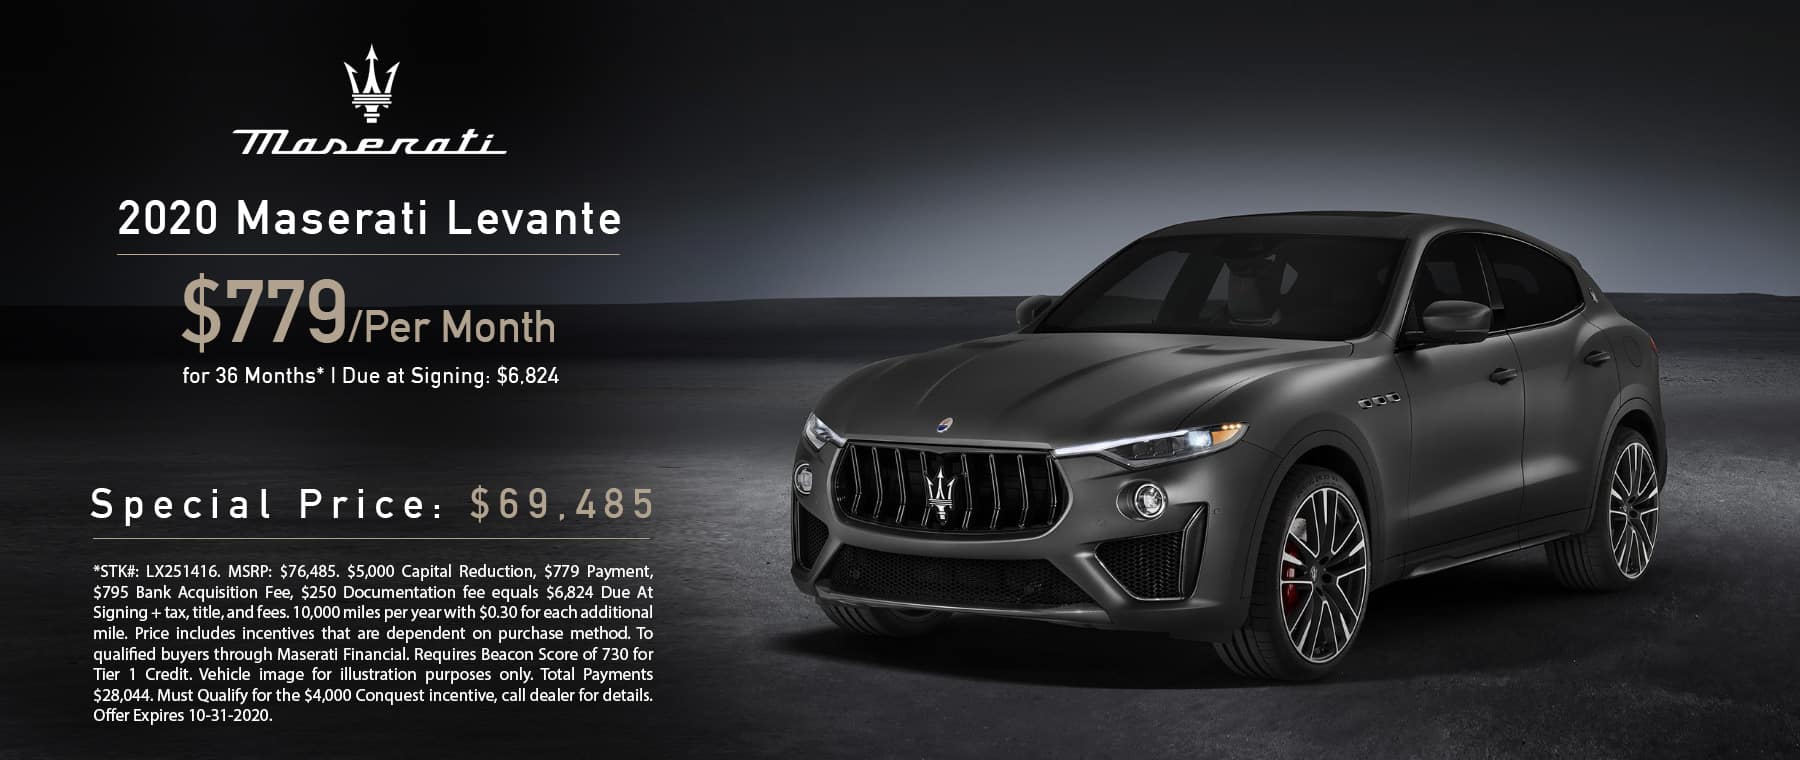 Maserati Levante Lease available in Cincinnati Ohio